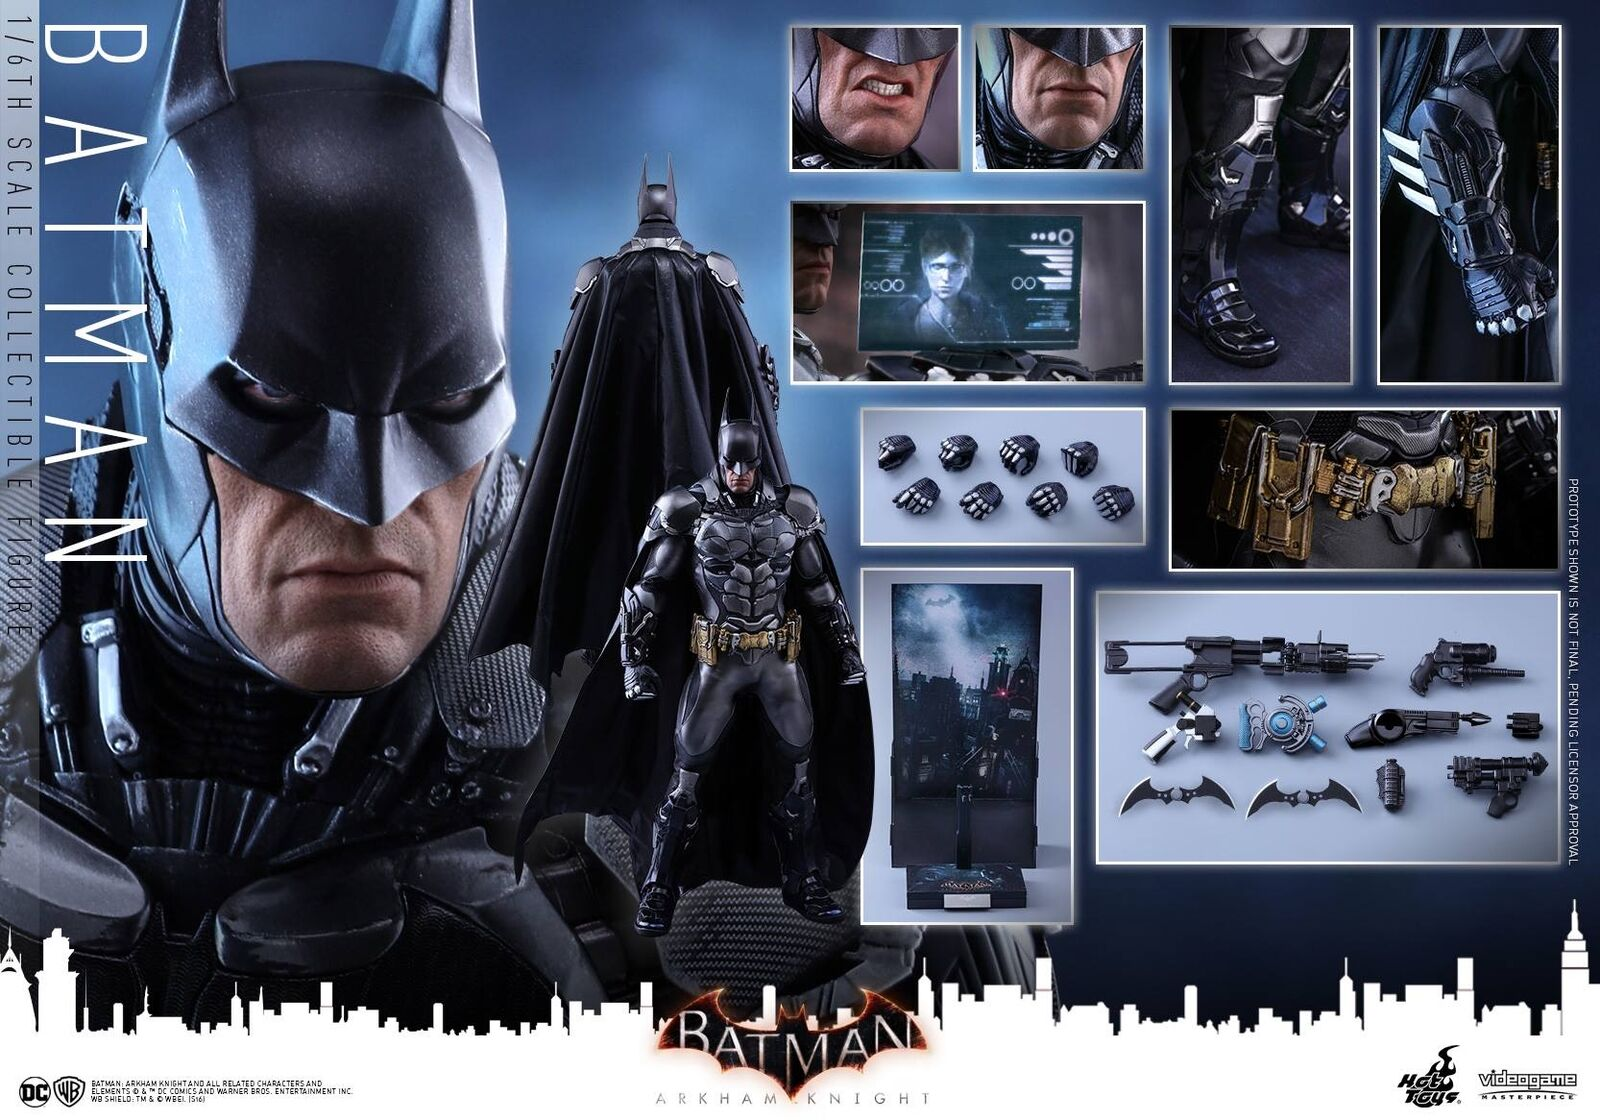 Hot Toys 1/6 VGM VGM VGM 26 Batman Arkham Knight 12 inch Action Figure Bruce Wayne New 10eb99